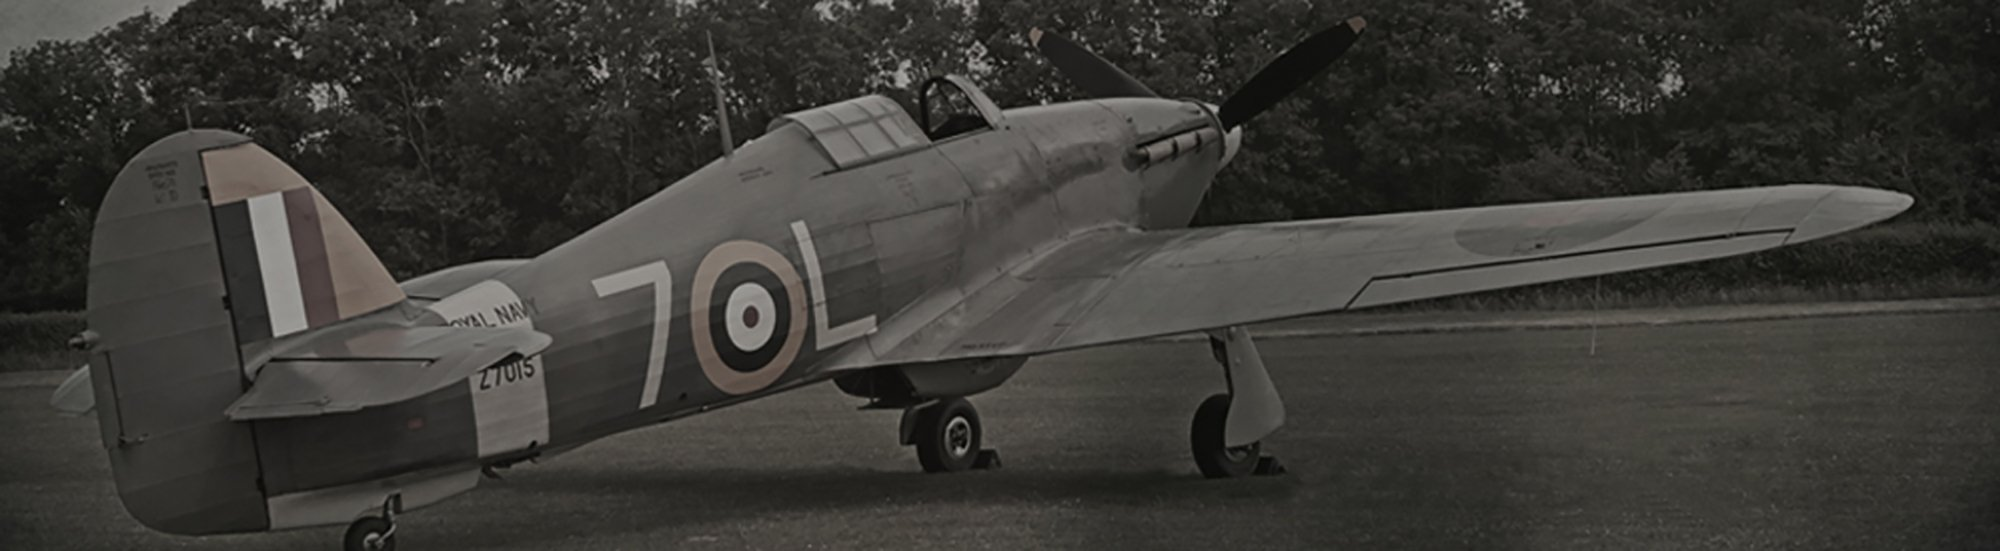 Hawker Hurricane Aircraft Royal Air-force historic picture